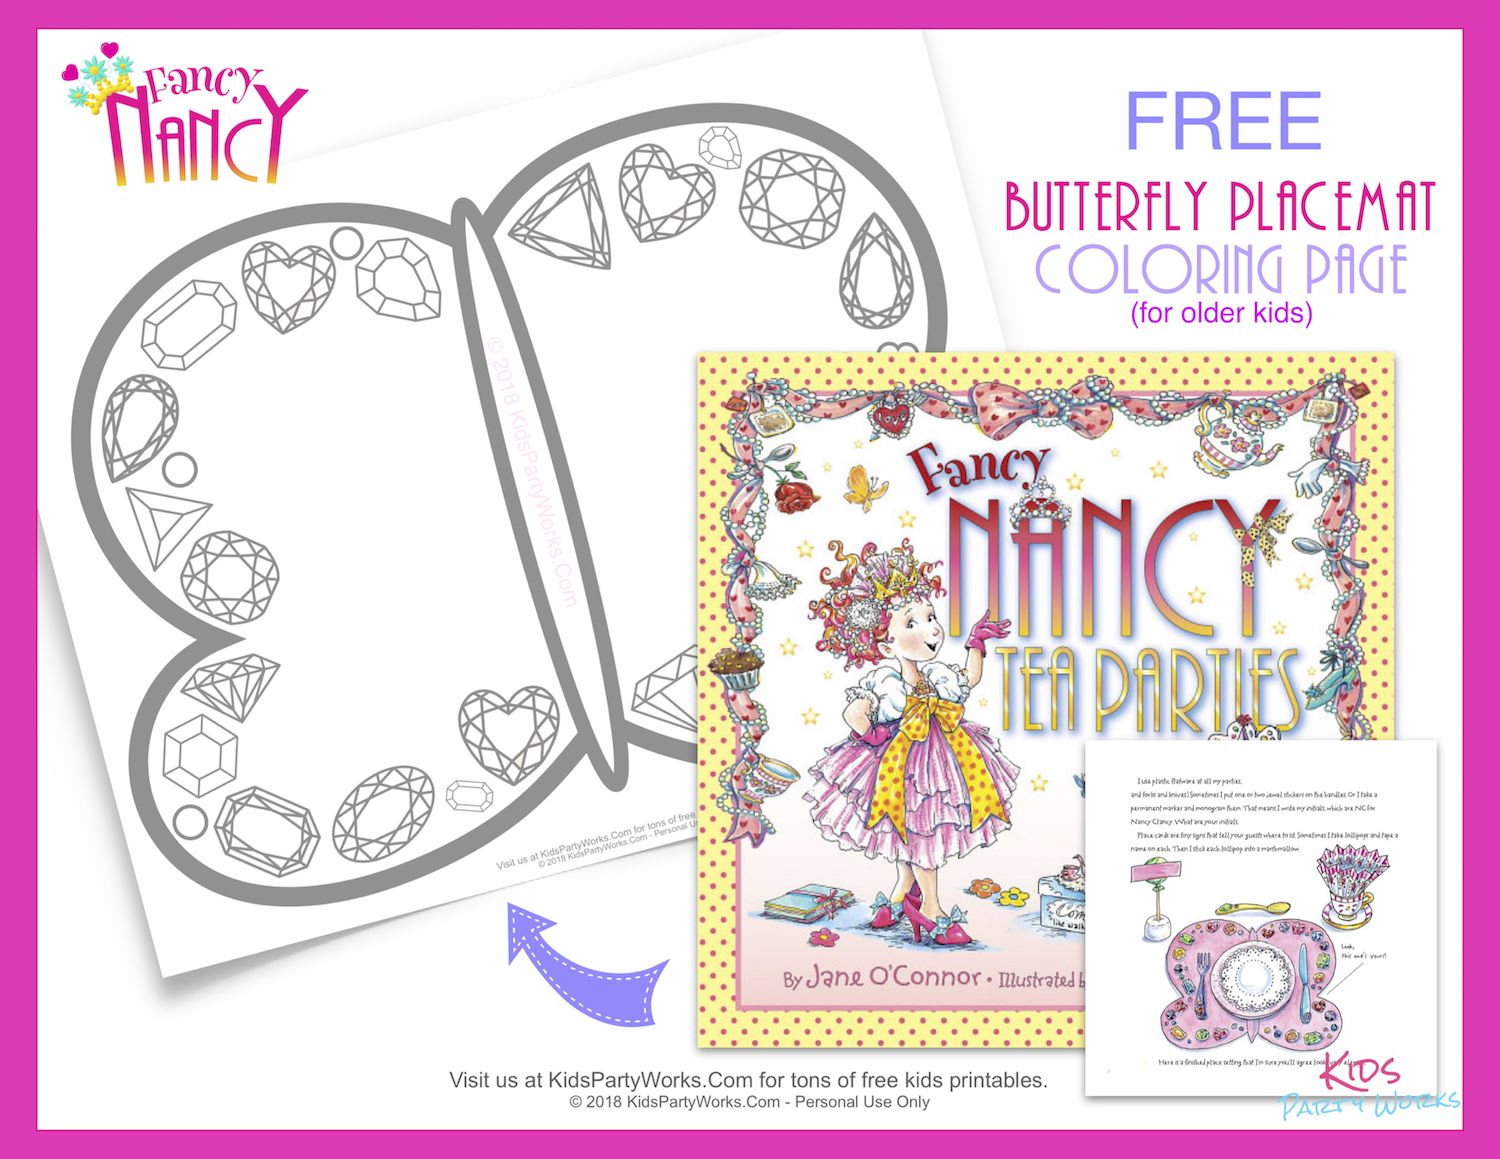 Free Fancy Nancy Butterfly Placemat Coloring Page Come See Our Other Printable Placemat For Younger Kids E Fancy Nancy Party Fancy Nancy Printables Free Kids [ 1159 x 1500 Pixel ]